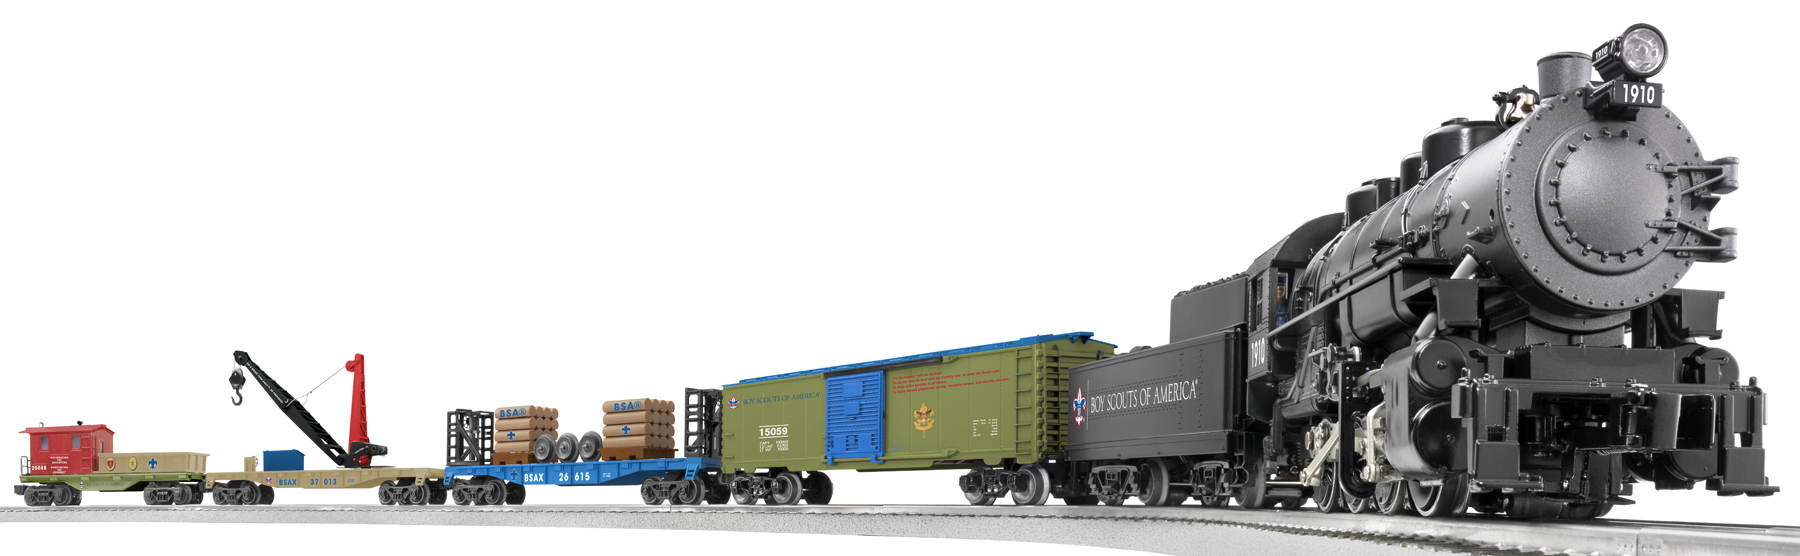 6-30161 Boyscouts of America 0-8-0 Freight Set